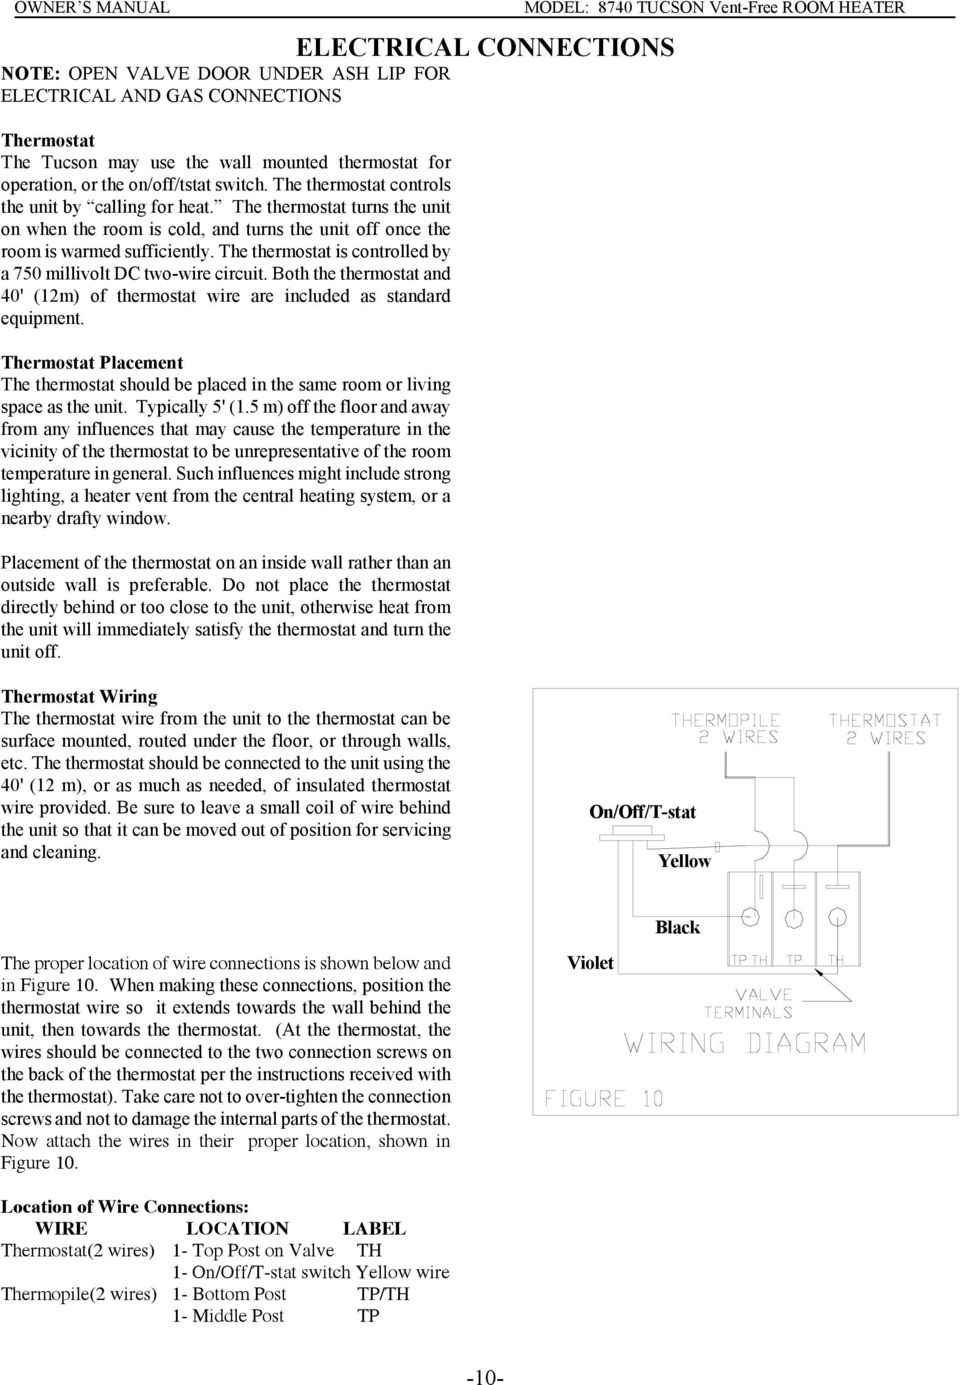 P323011 Gas Valve Wiring Diagram Schematic Diagrams Williams Top Vent Wall Furnace Electricity